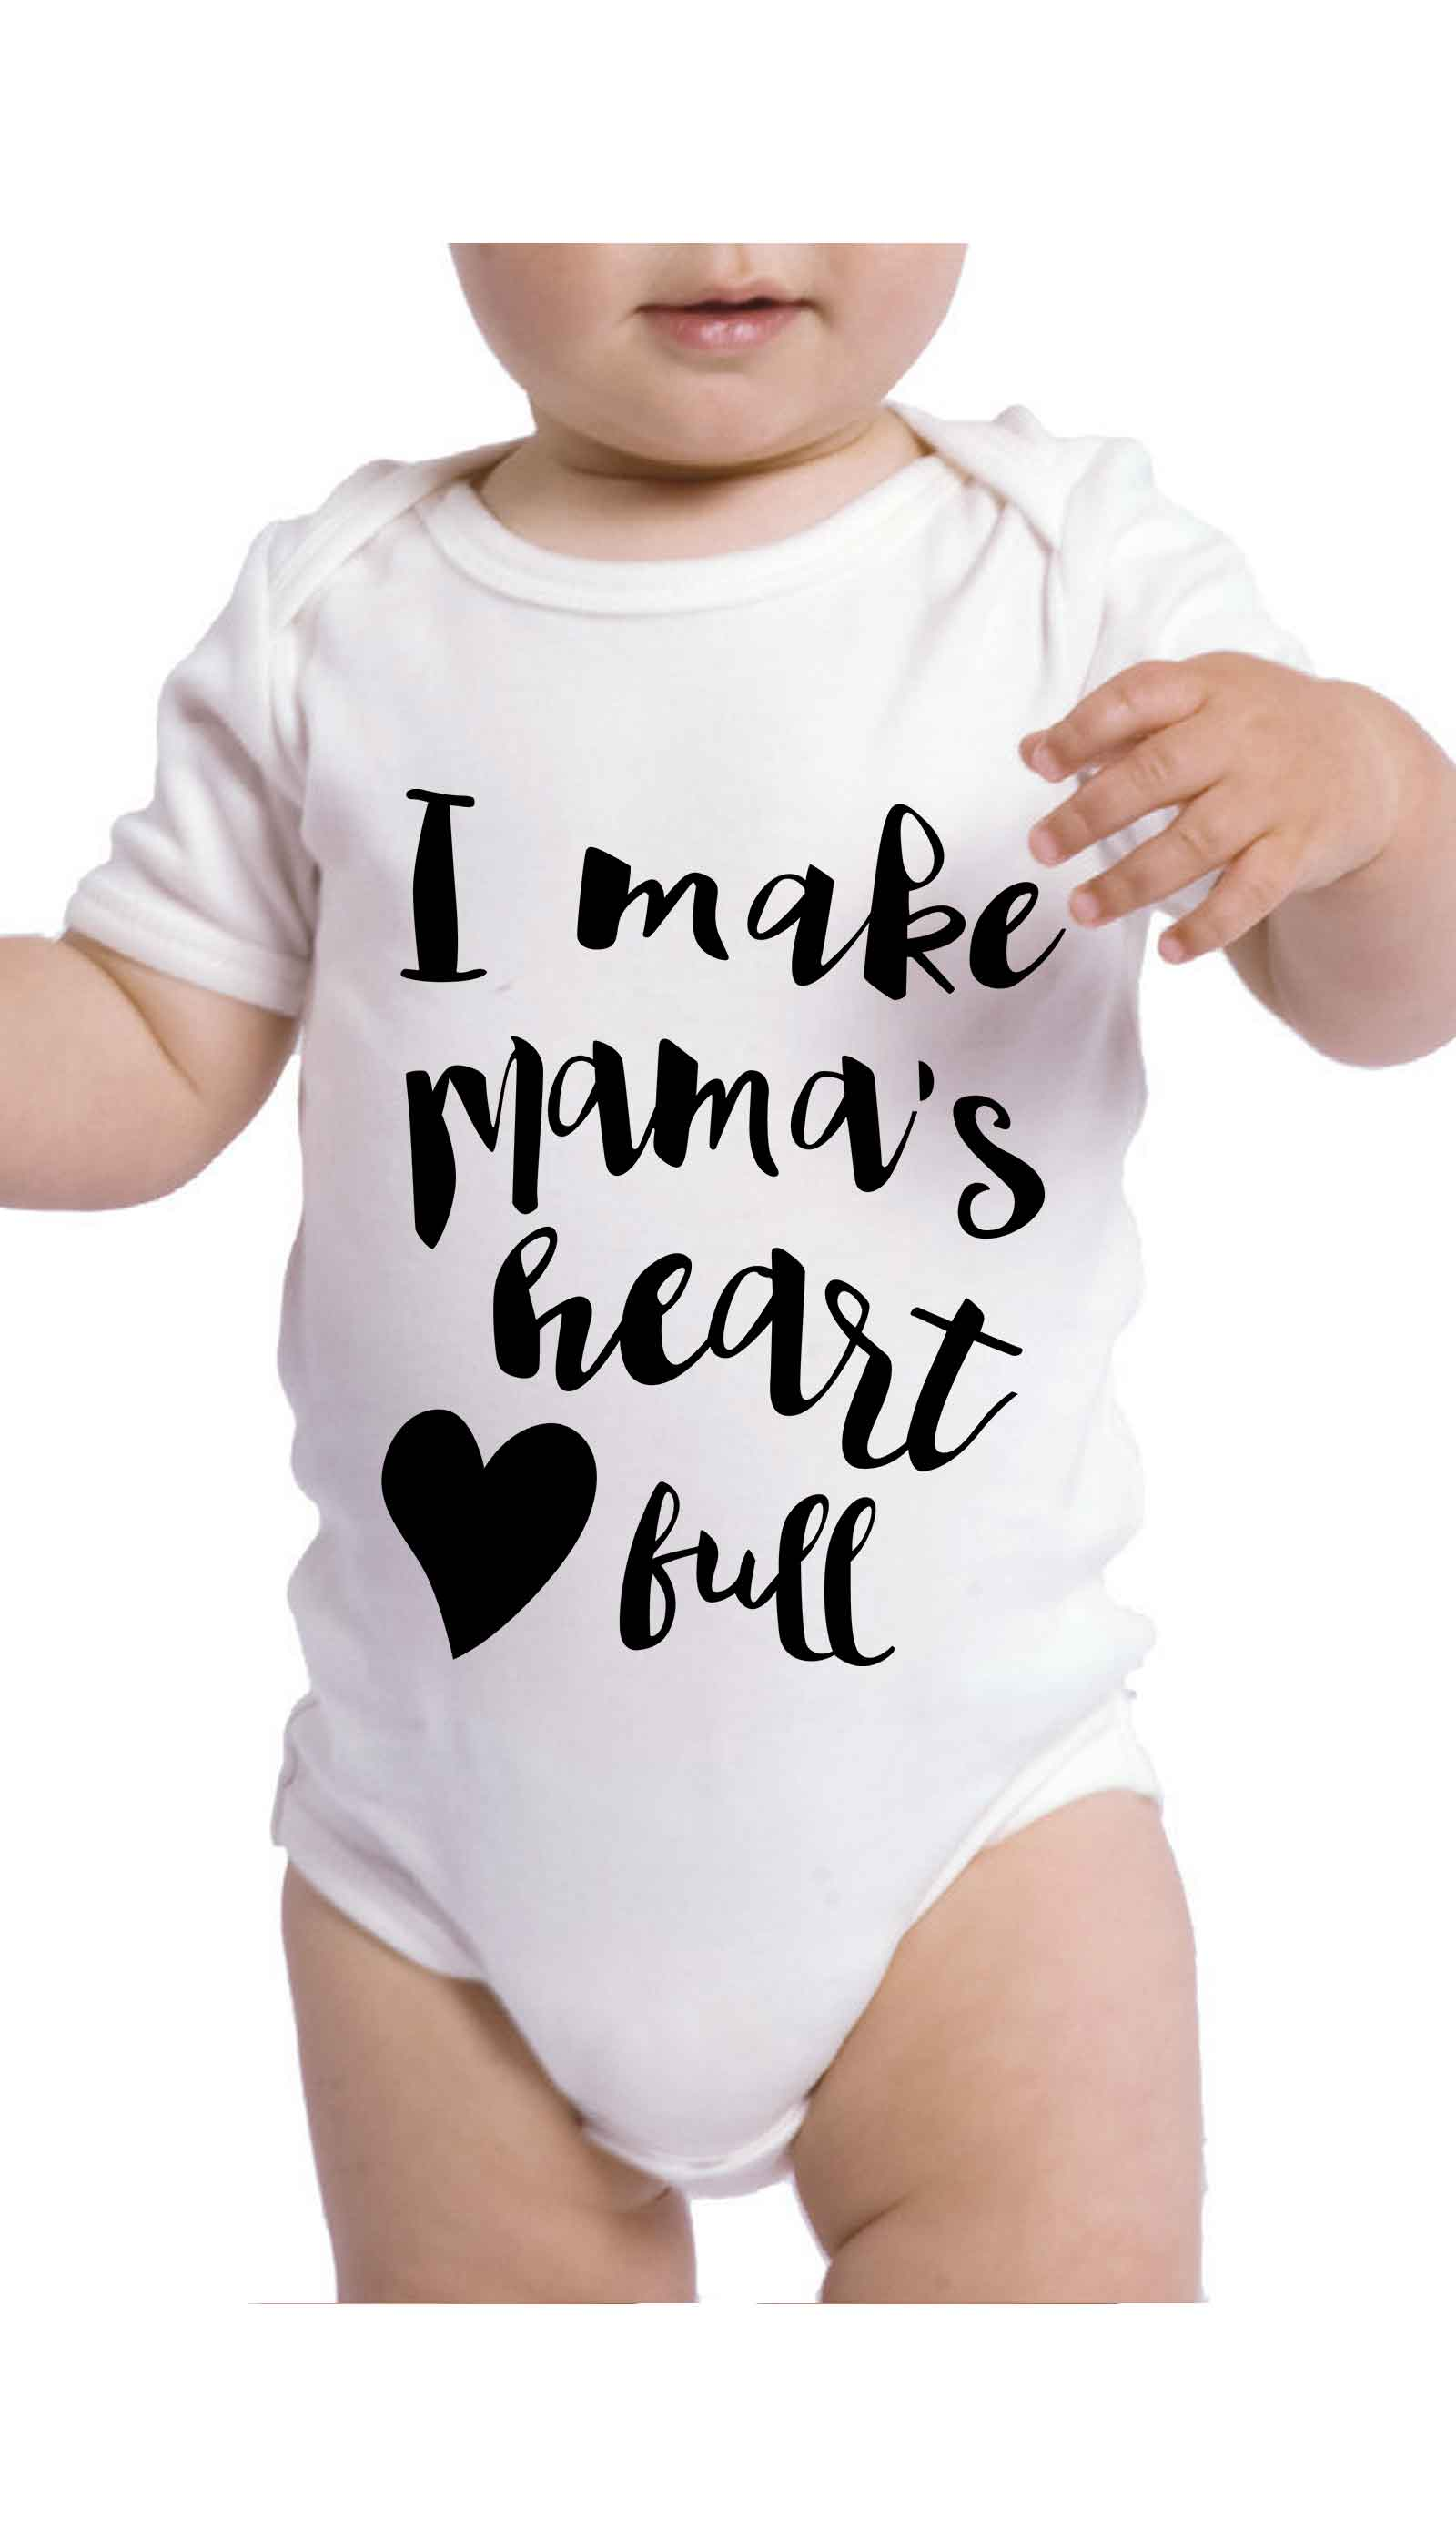 I Make Mama's Heart Full Cute & Funny Baby Infant Onesie | Sarcastic ME